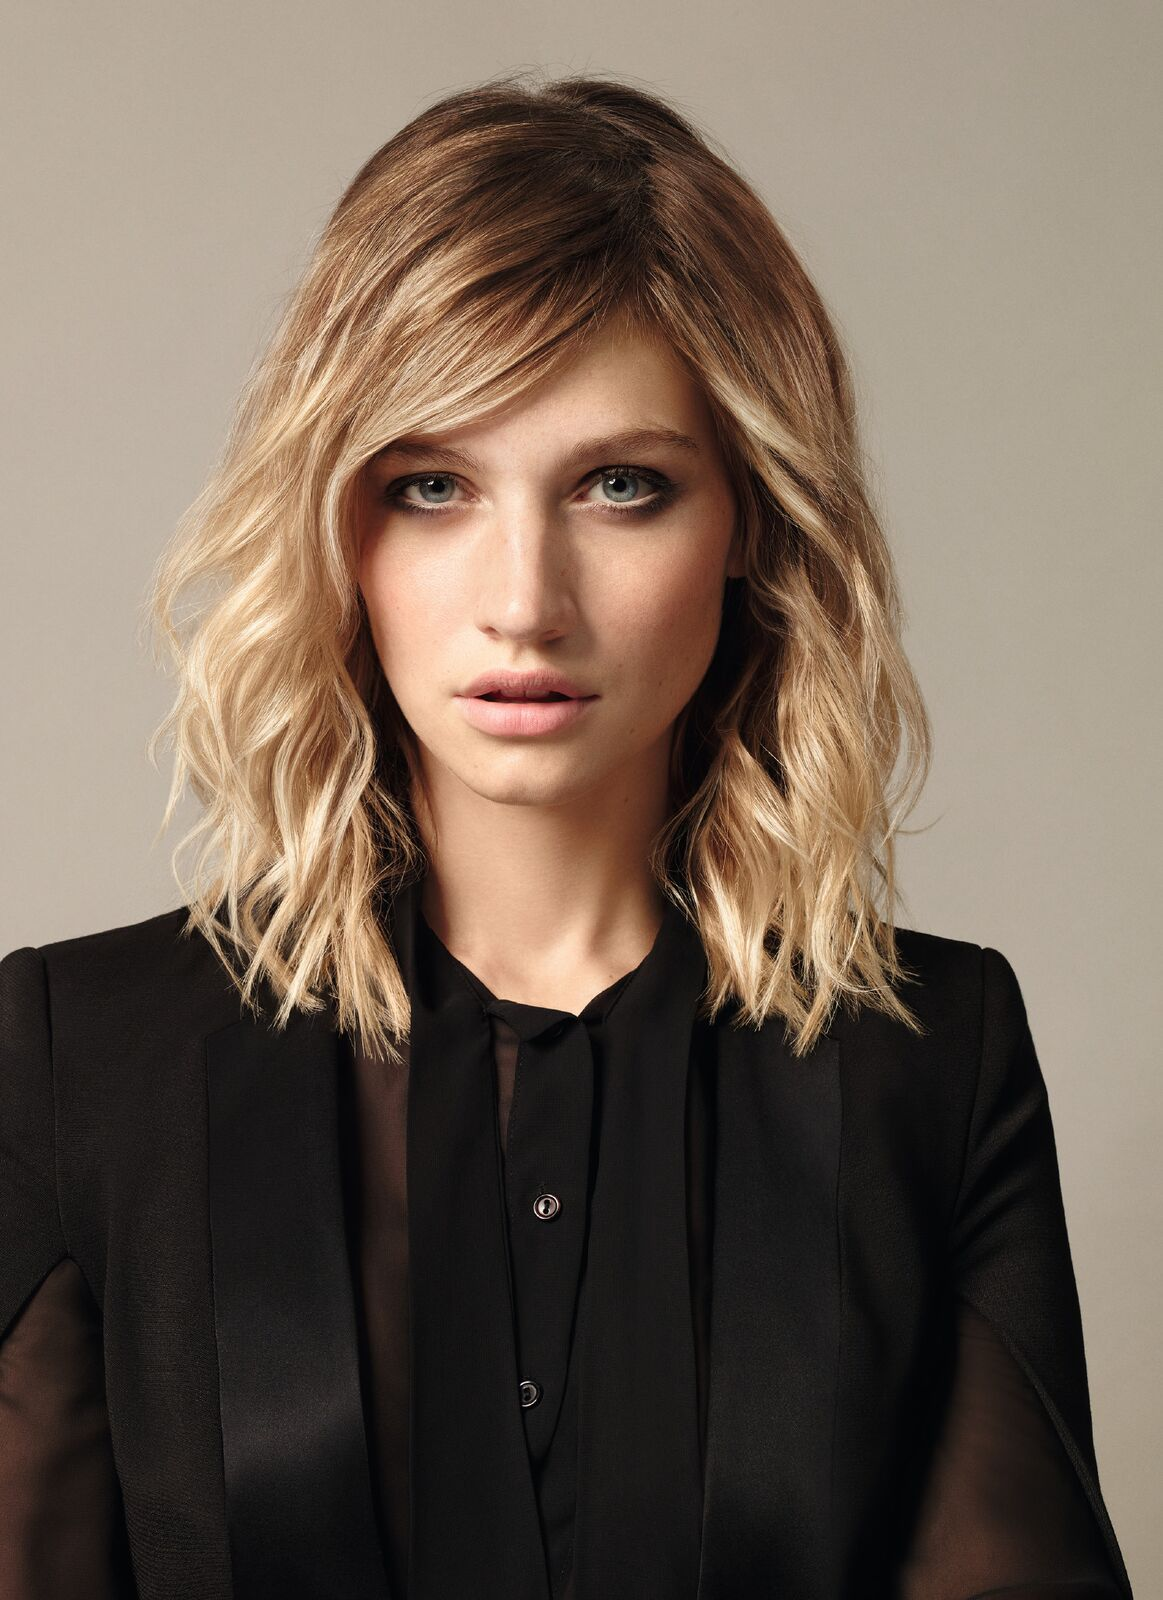 A beautiful example of a short hair style